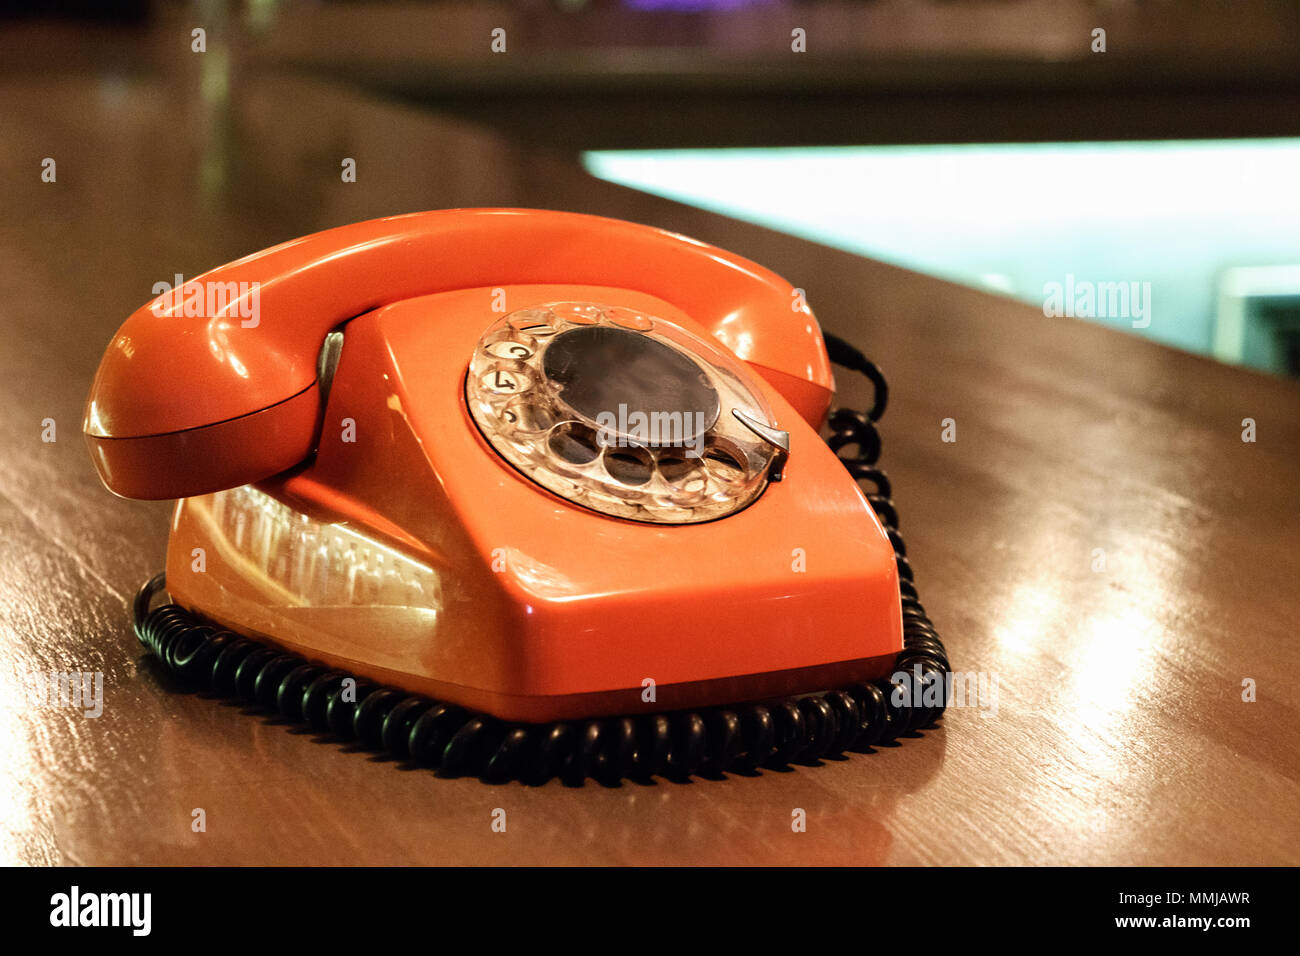 A vintage plastic orange telephone with dial placed on a wooden table inside a bar. - Stock Image